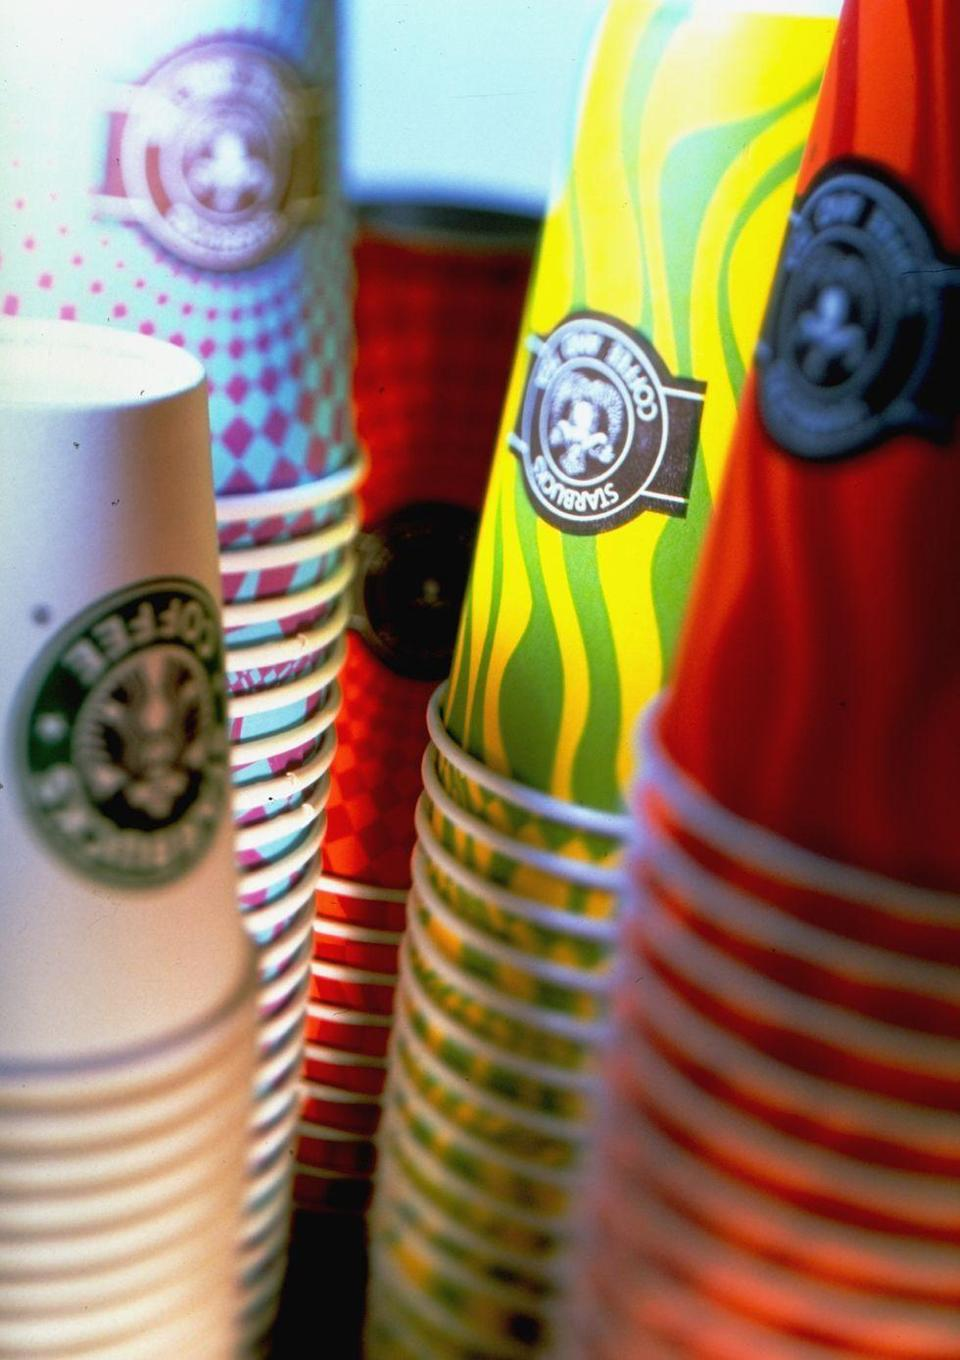 <p>Just four years after being acquired, Starbucks began a quest of massive expansion. By 1989, the total number of stores more than doubled with 55 locations. </p>